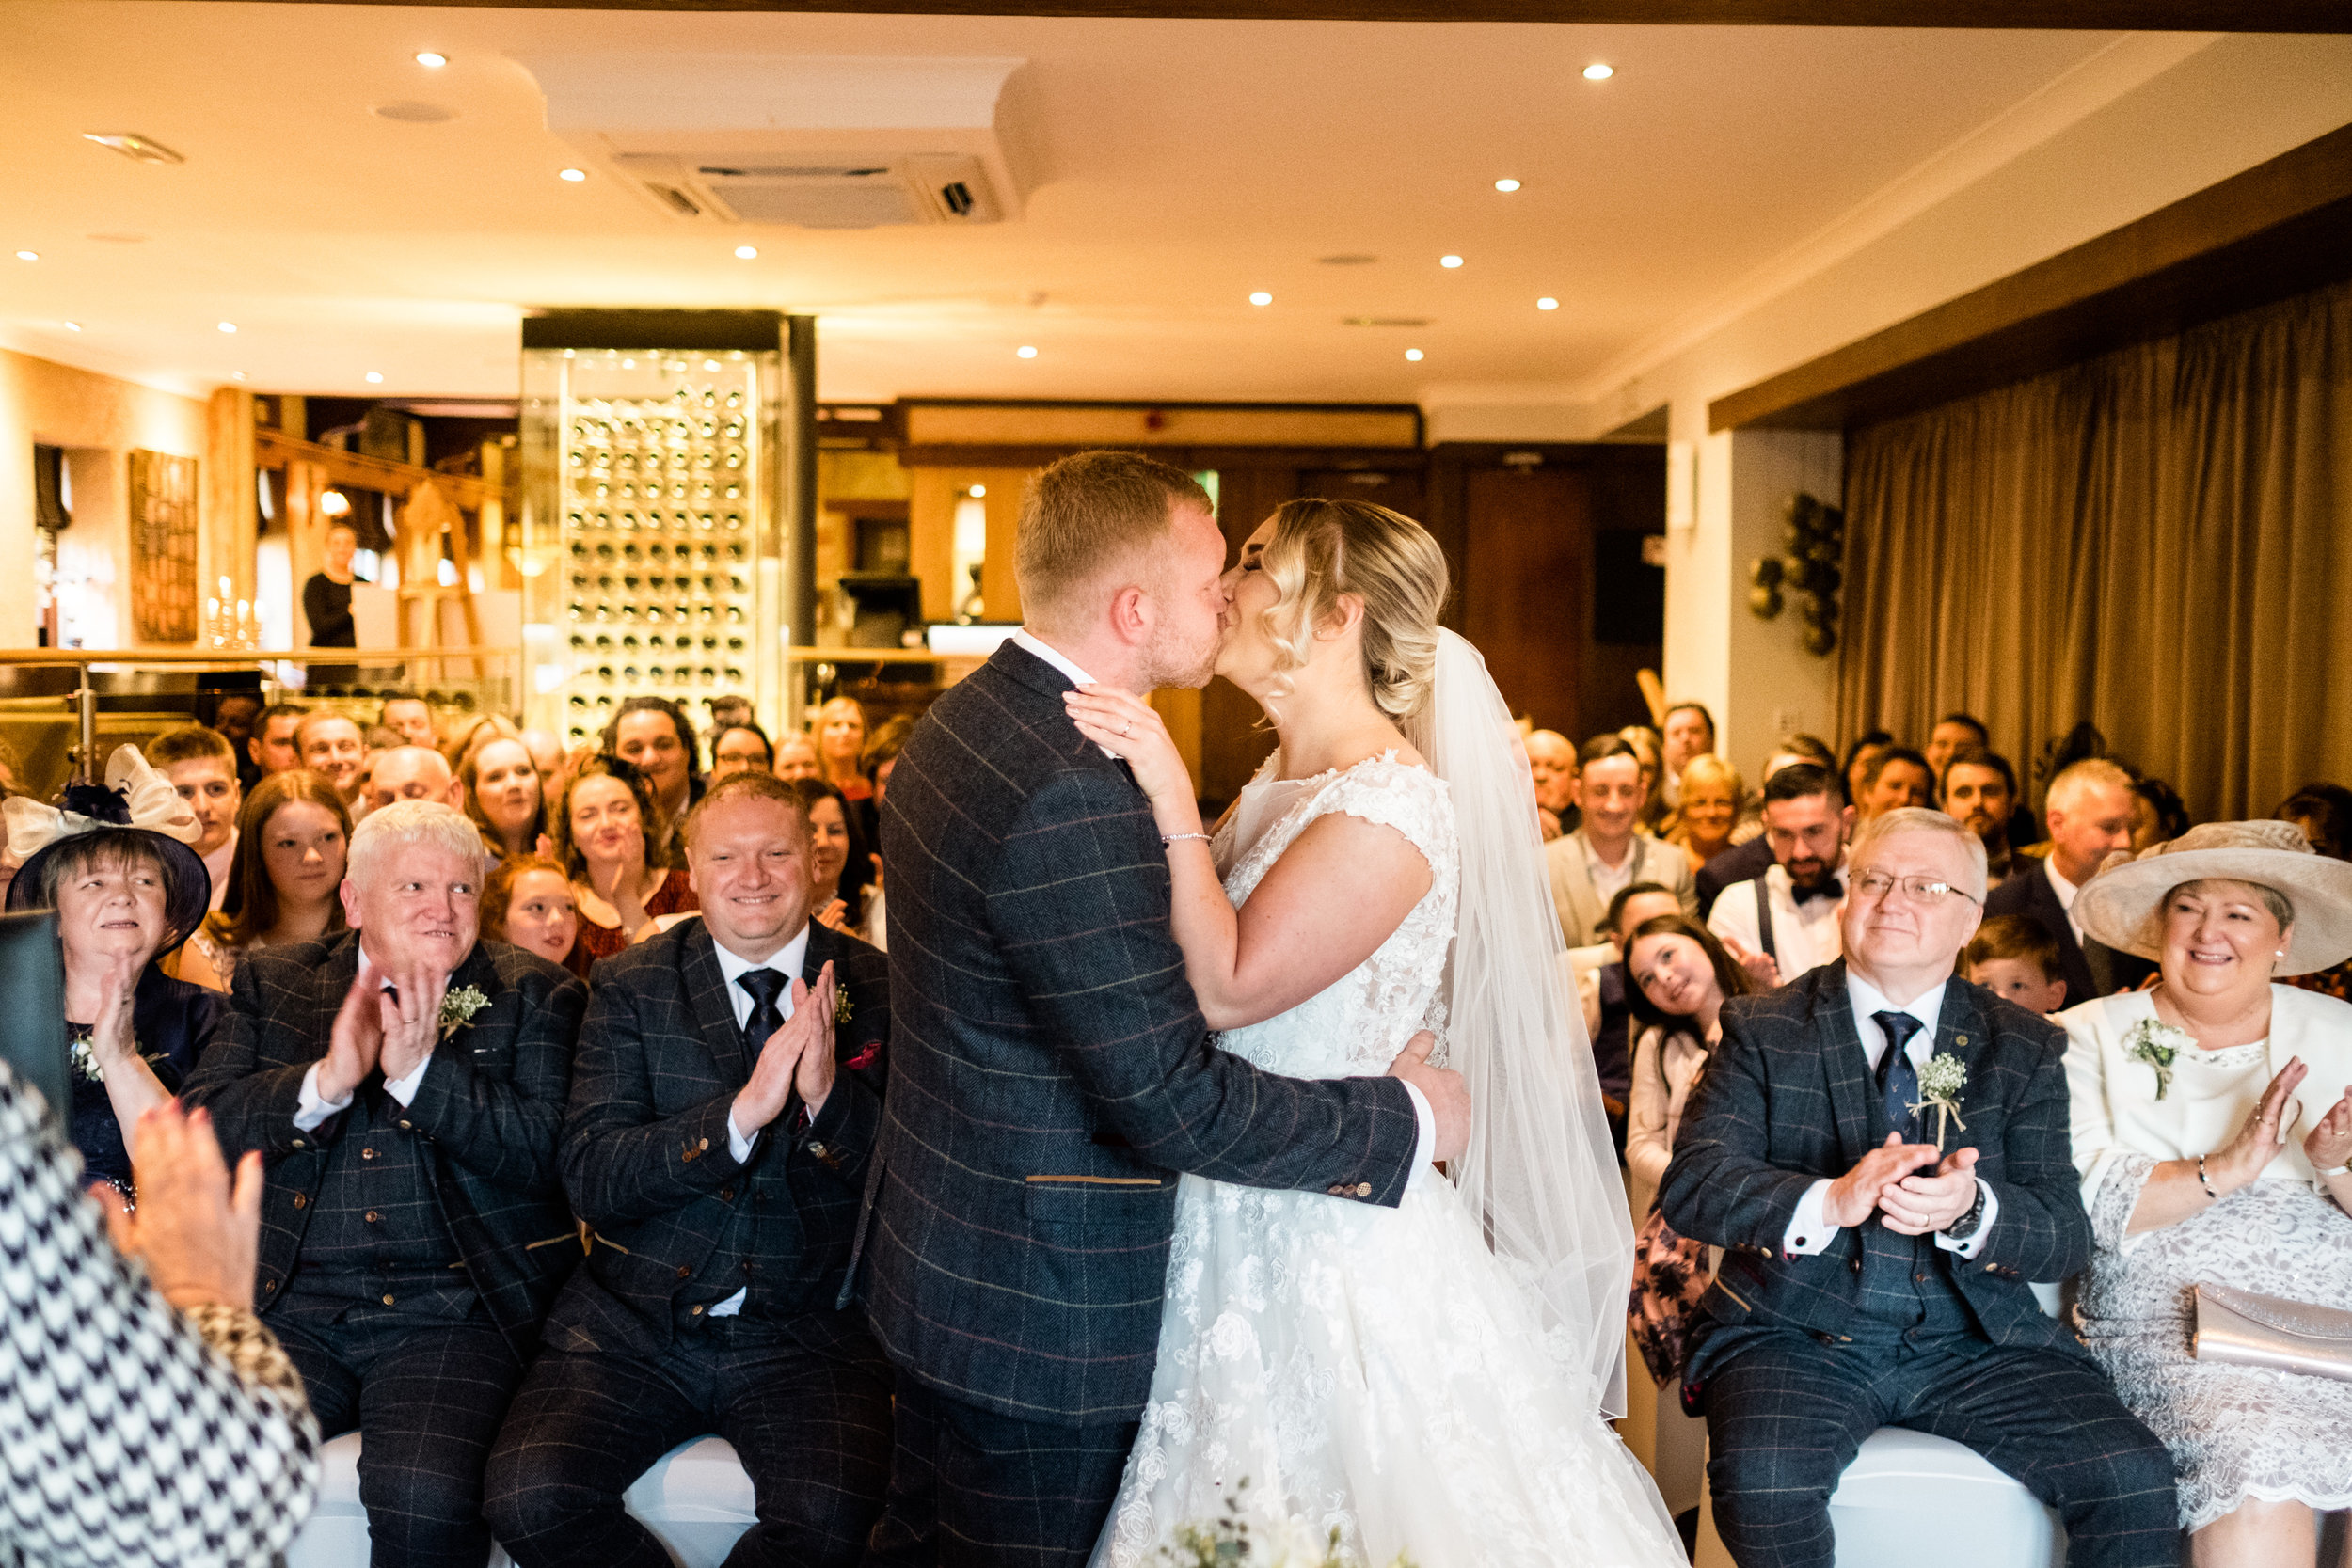 Autumn Wedding Photography at The Three Horseshoes, Blackshaw Moor, Staffordshire Moorlands - Jenny Harper-27.jpg